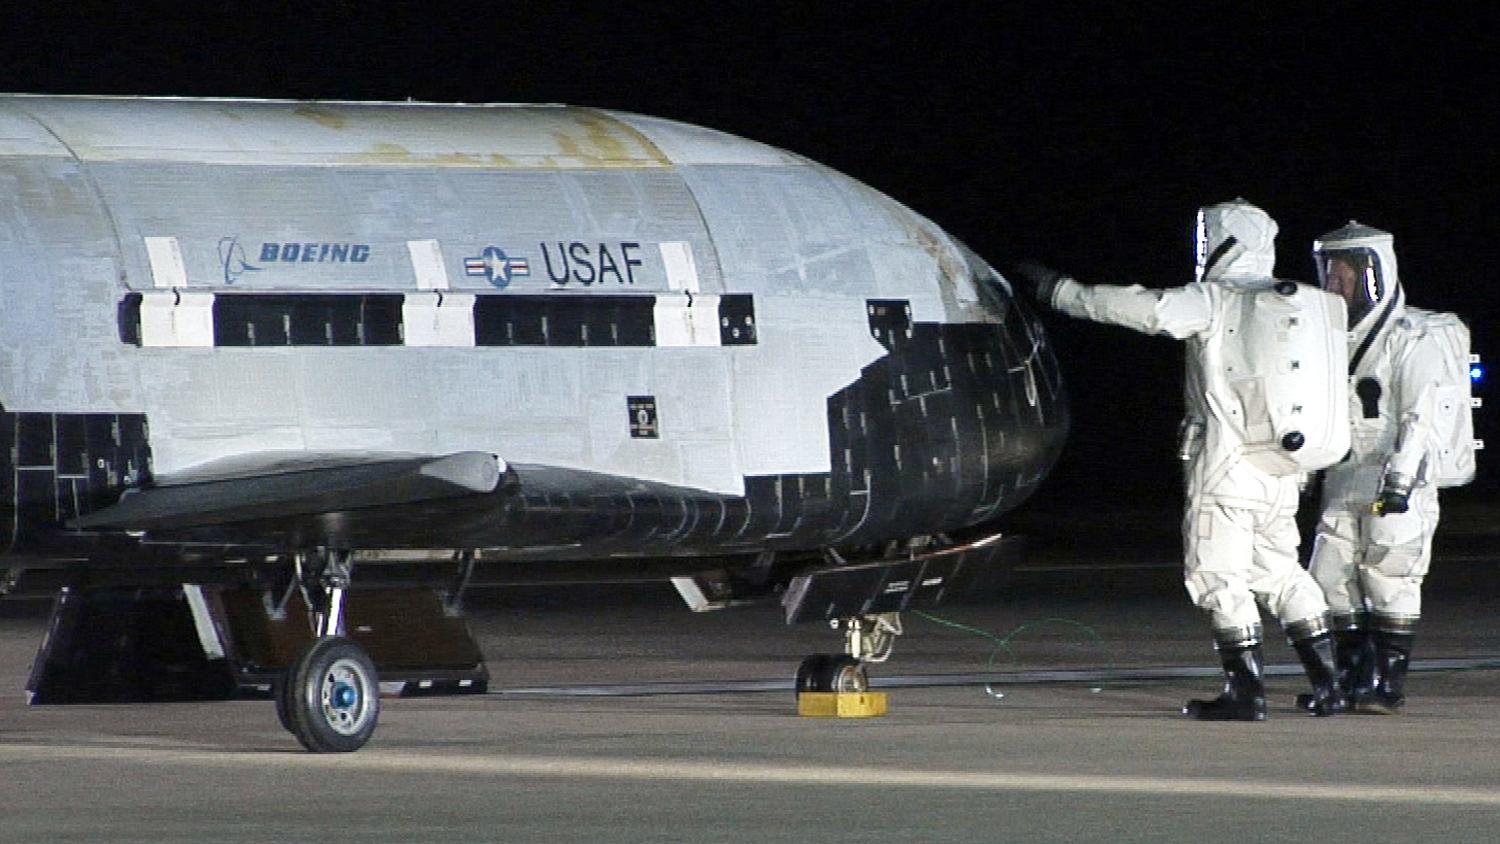 This image provided by Vandenberg Air Force Base shows technicians examining the X-37B unmanned spaceplane shortly after landing Friday Dec. 3, 2010 at Vandenberg Air Force Base, Calif. The X-37B slipped out of orbit and landed after a successful maiden flight that lasted more than seven months, the Air Force said.